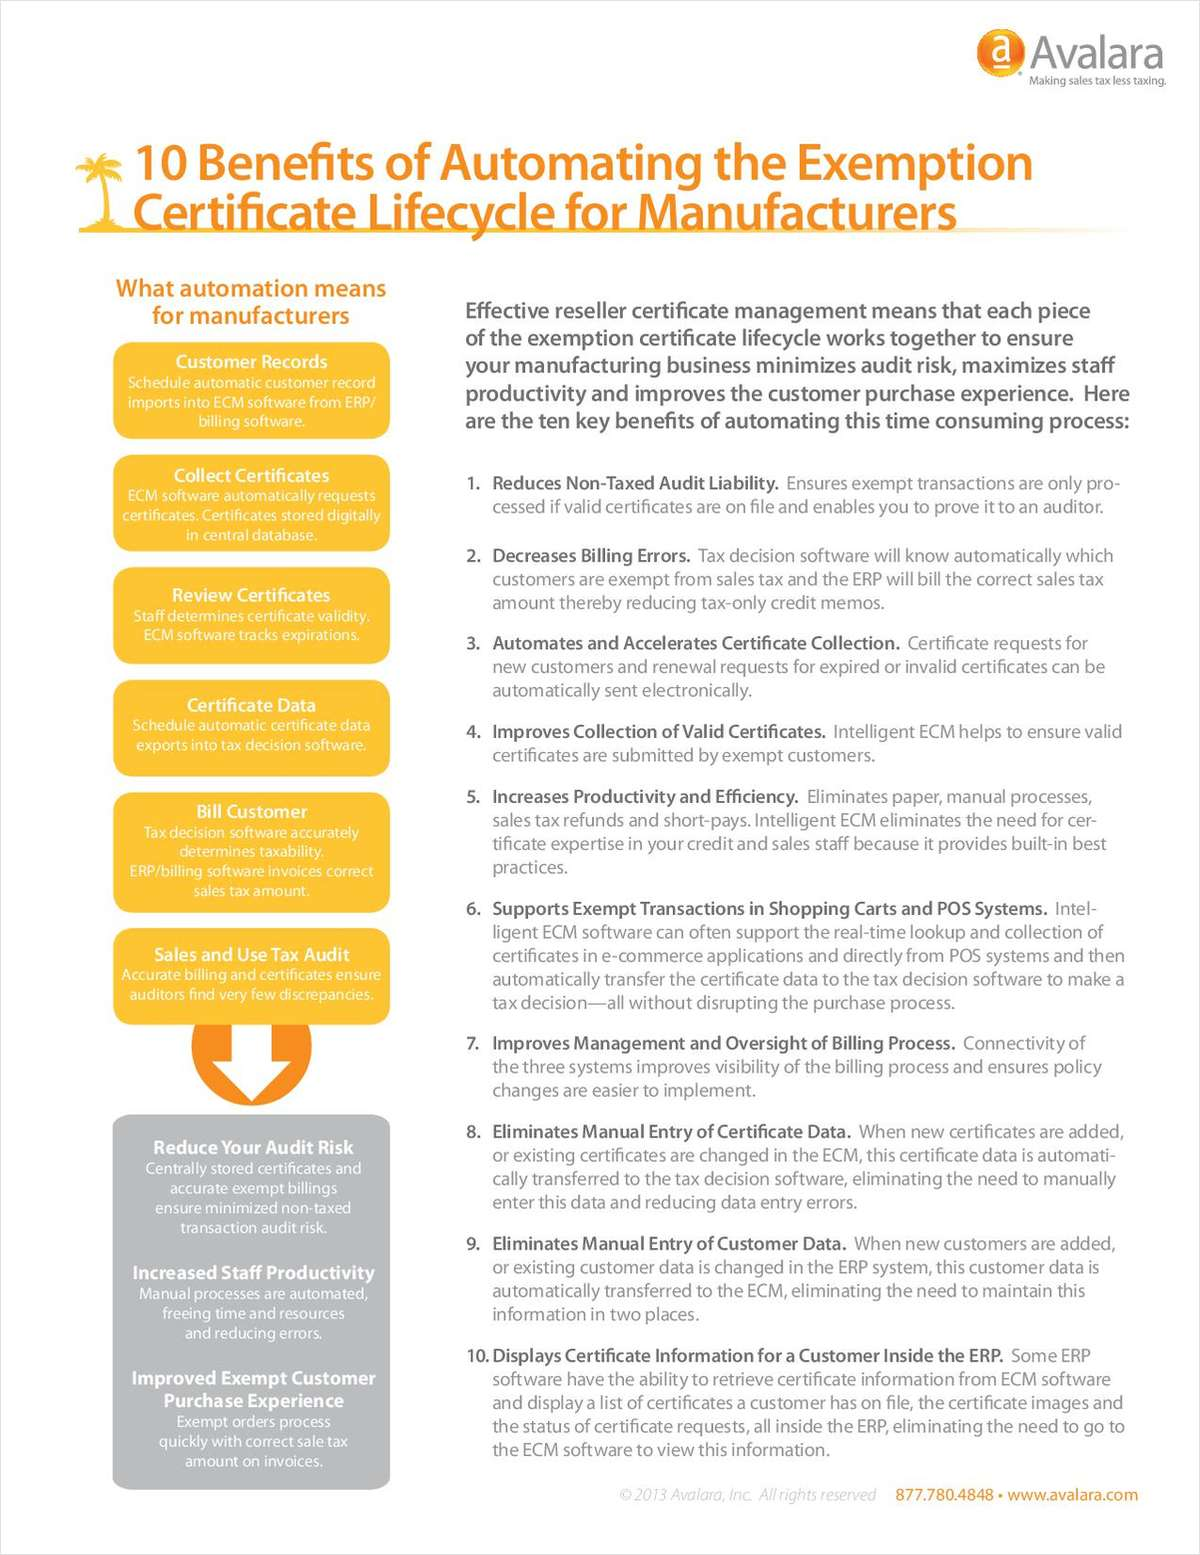 10 Benefits of Automating Exemption Certificates for Manufacturers